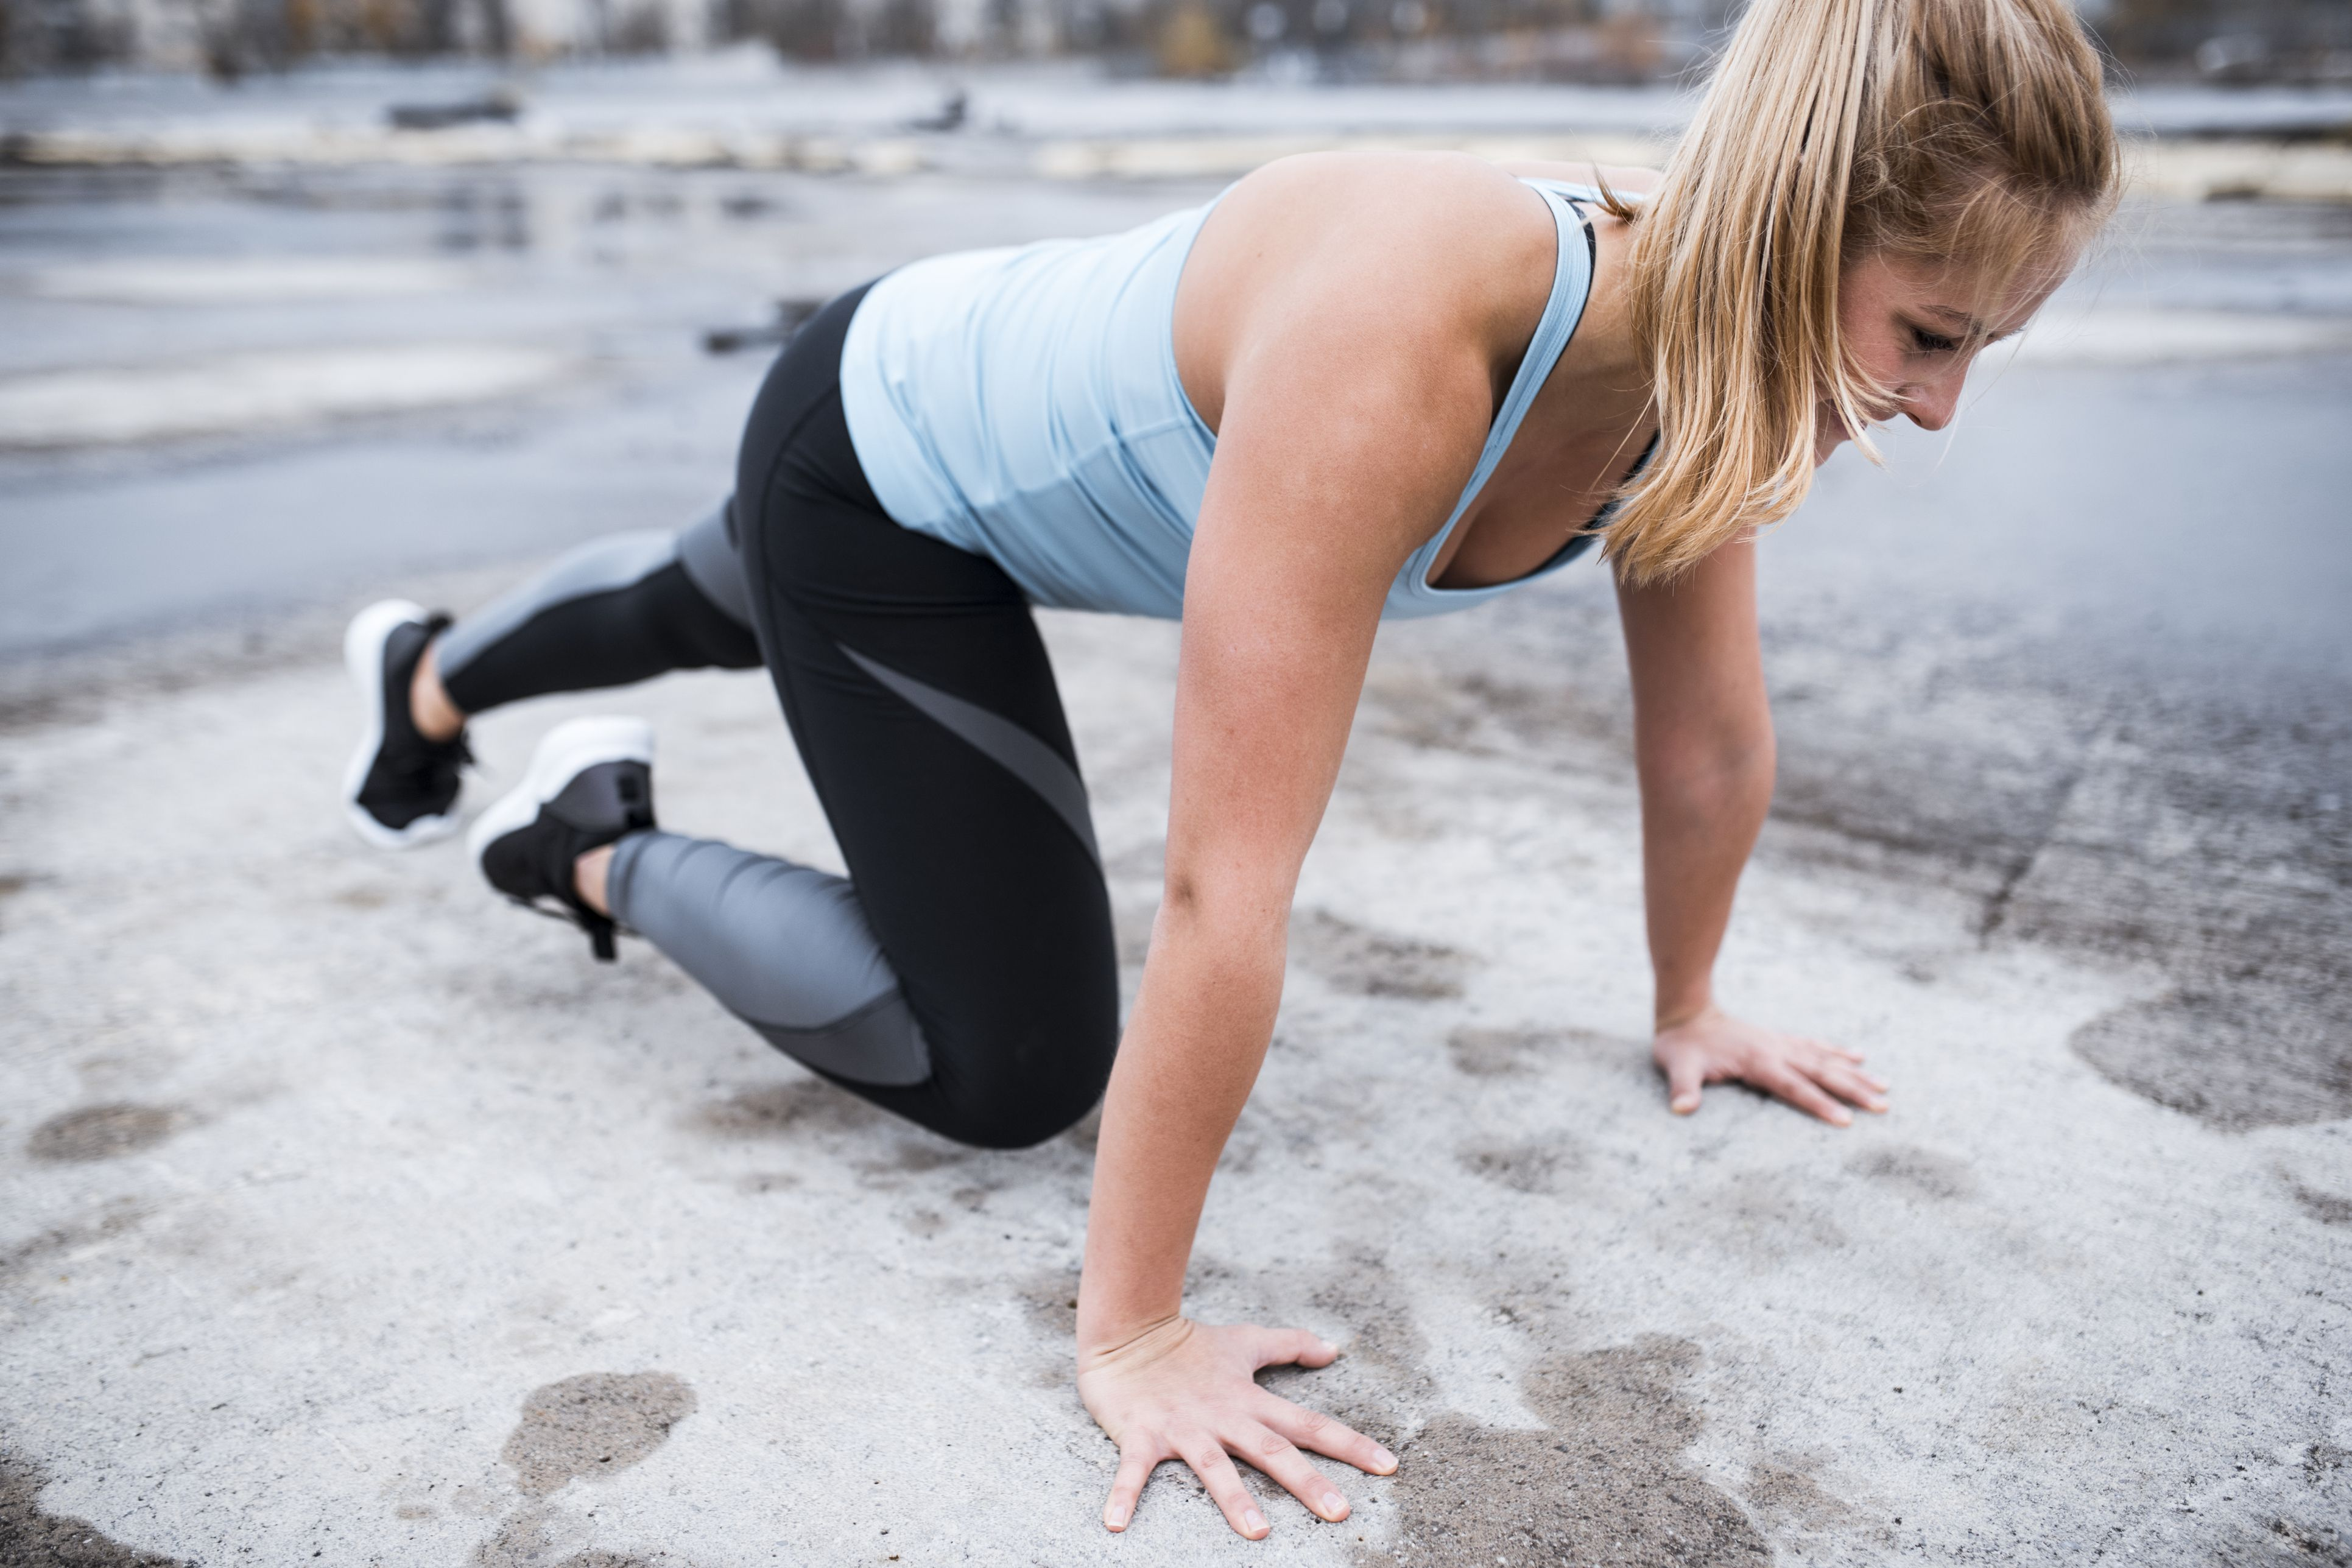 Athlete woman doing mountain climbers outdoors